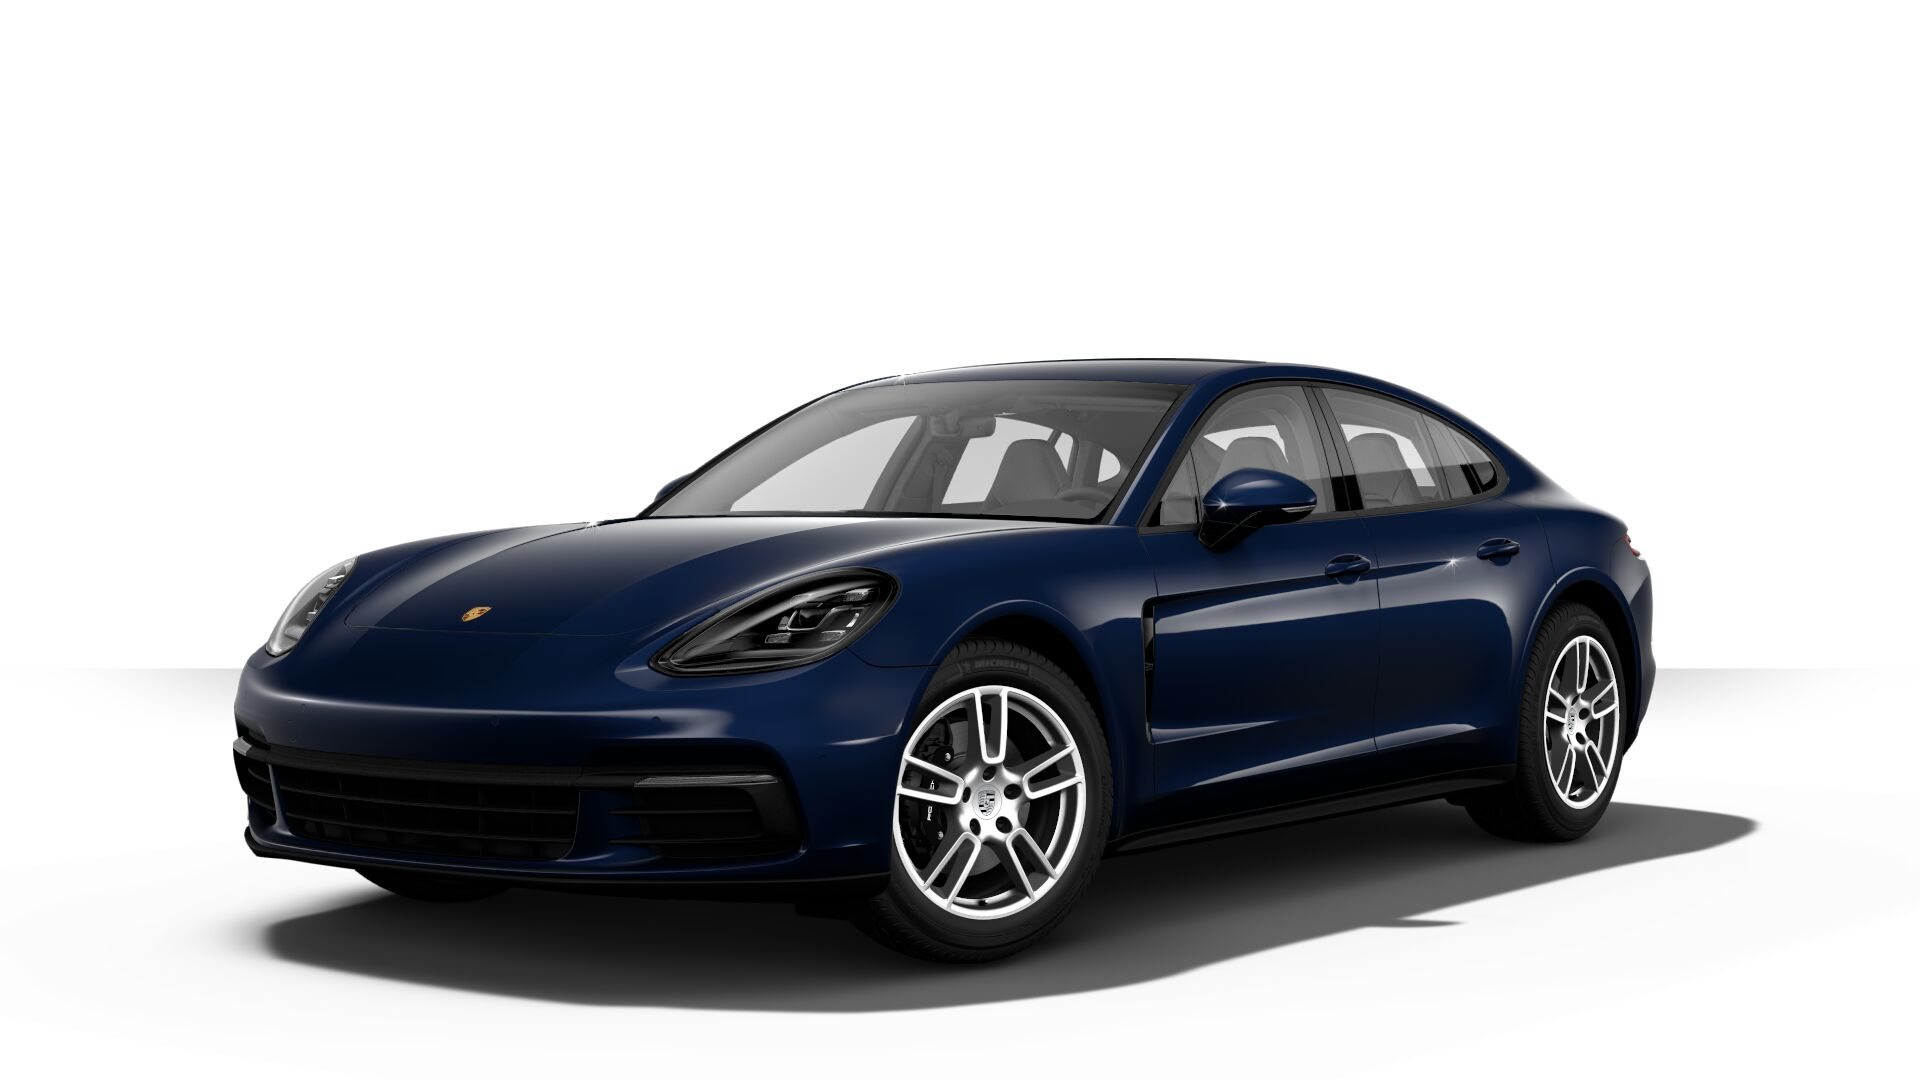 2019 Porsche Panamera in night blue